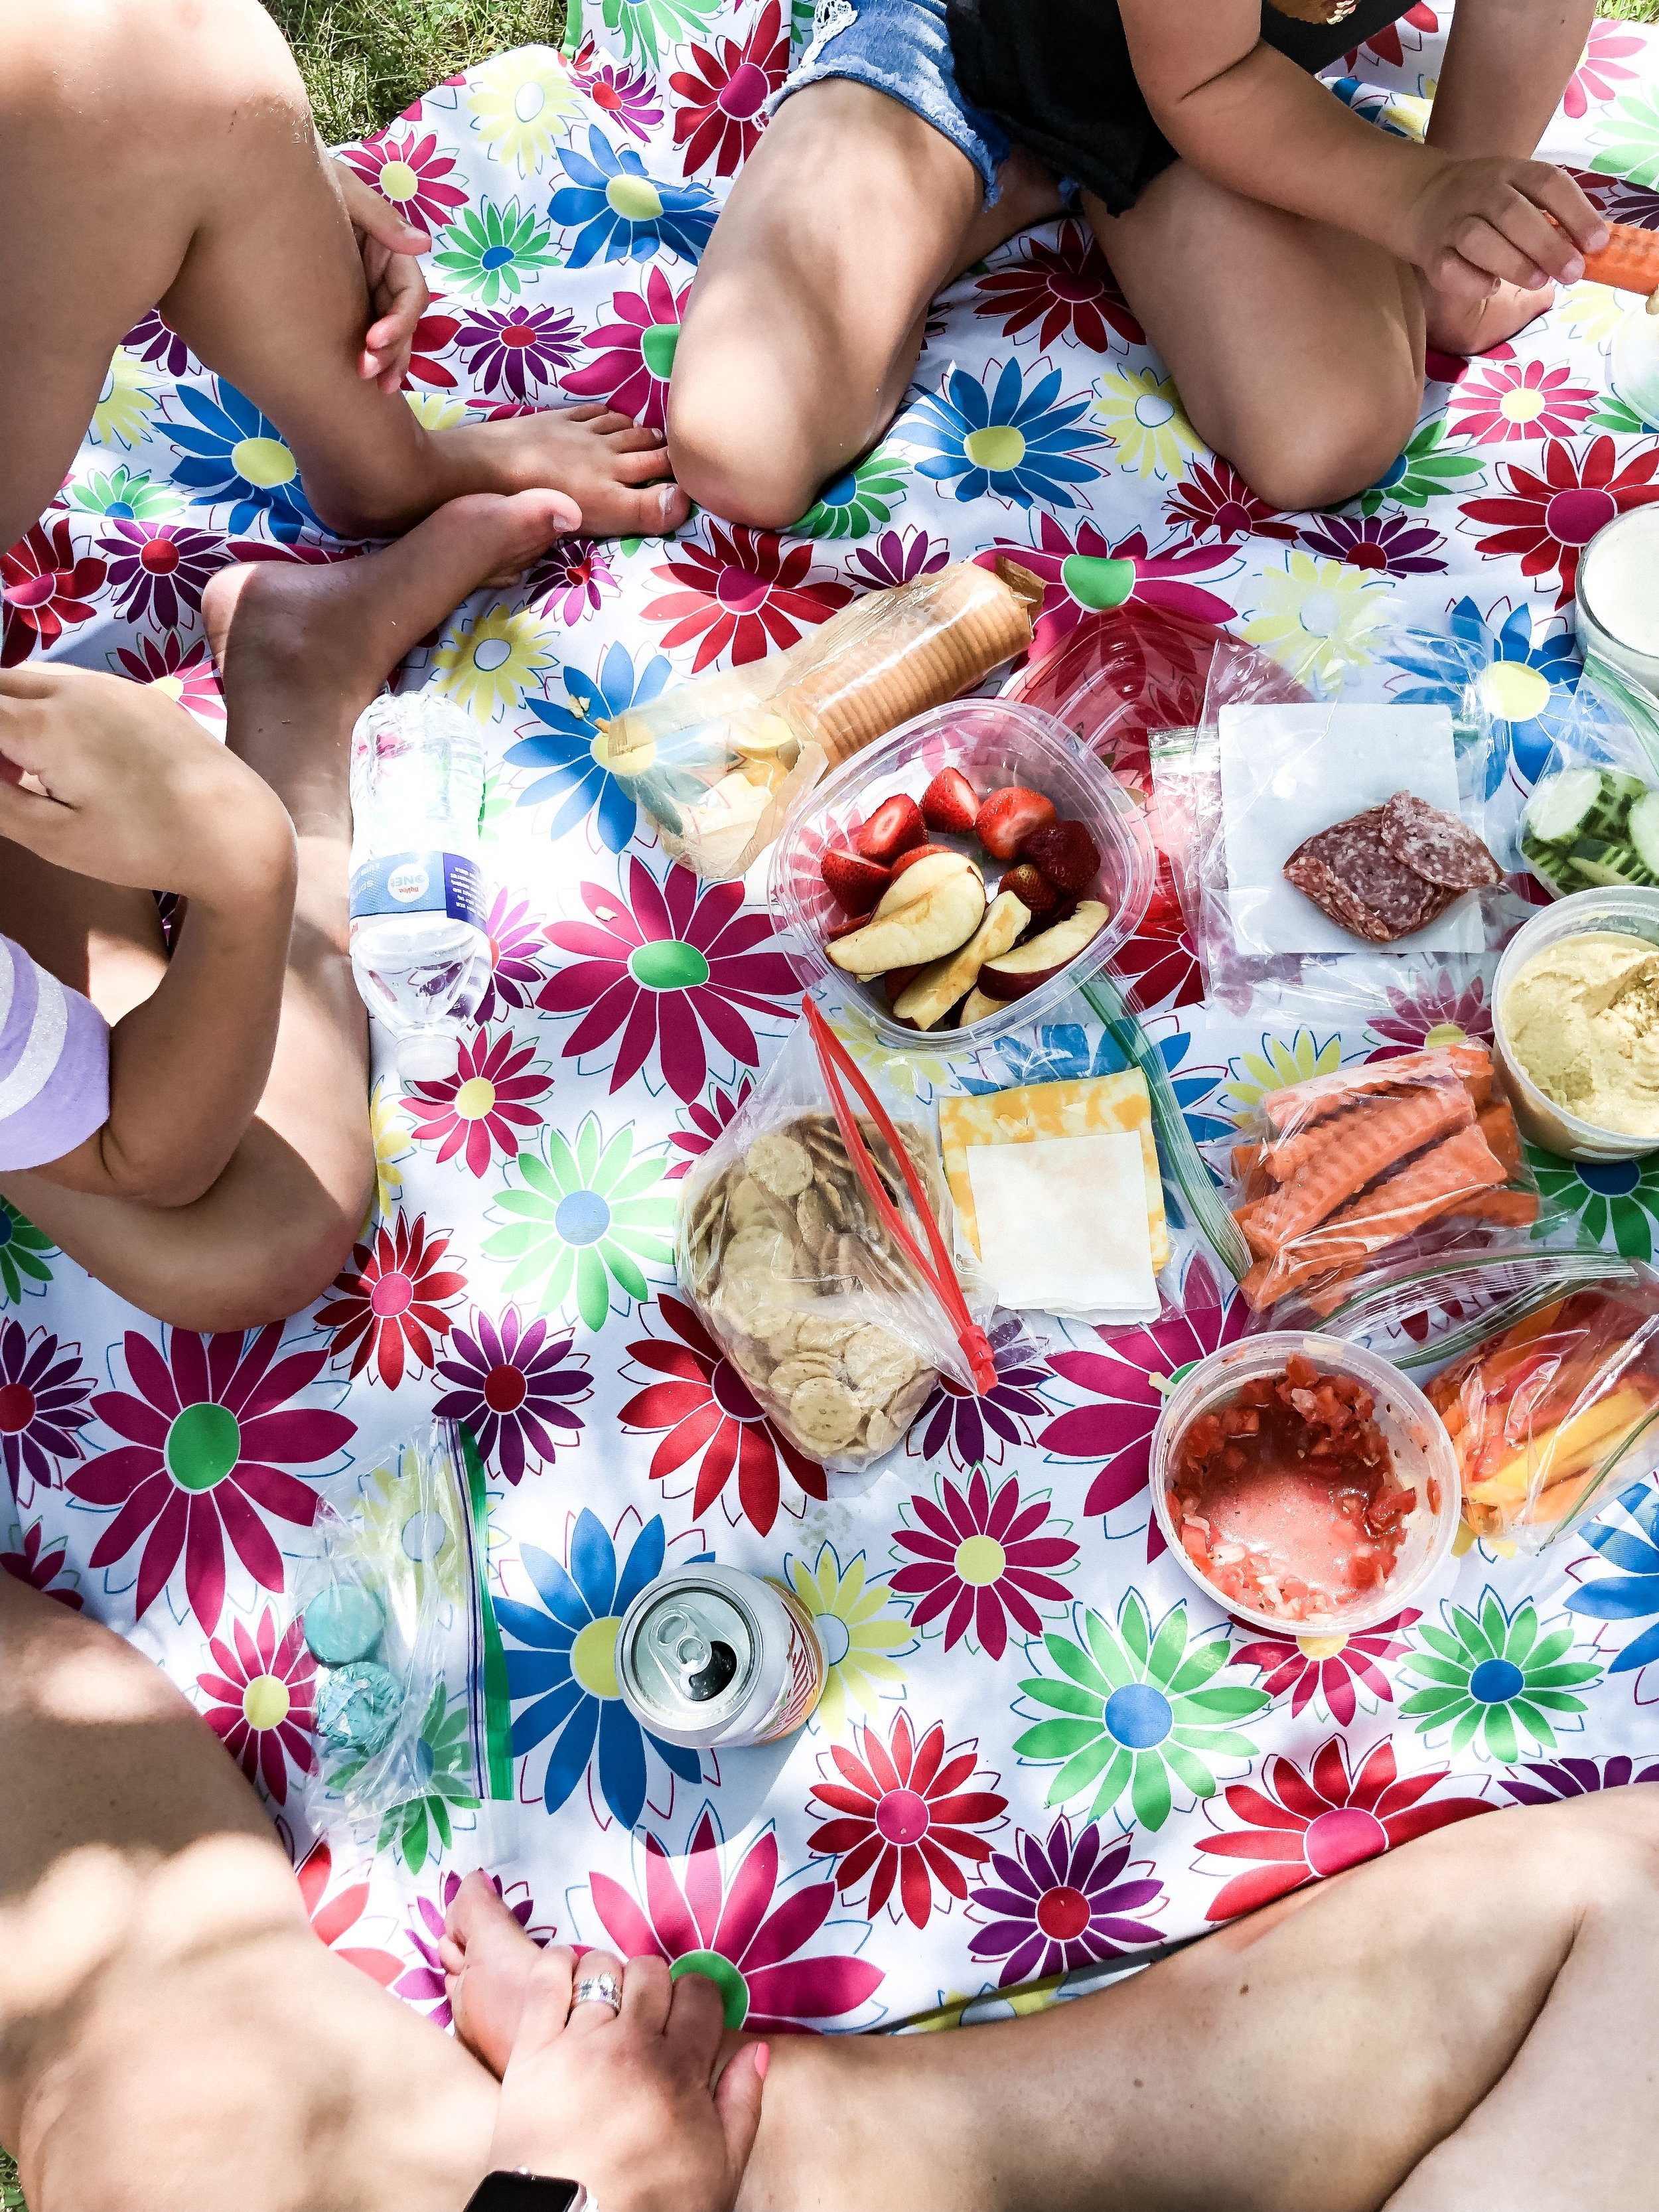 We've been enjoying a lot of summer picnics to enjoy the weather, make some memories, and save money!